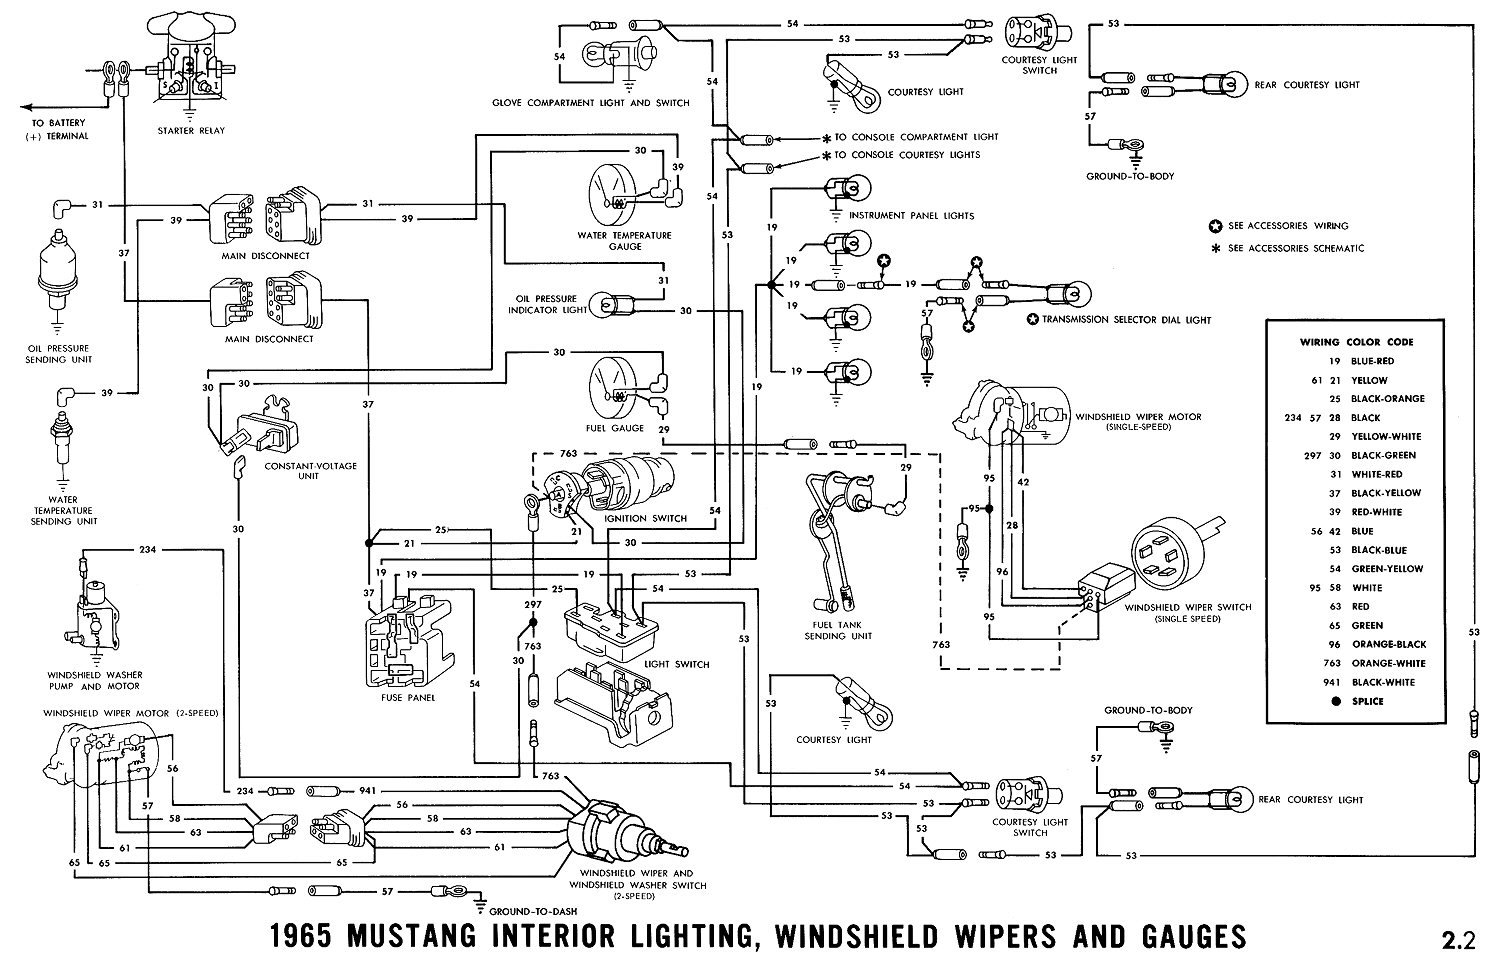 354697d1402370433 1970 mustang installing new radiator no temperature sensor interior lighting gauges wiring diagram for 1972 ford f100 the wiring diagram F100 Wiring Diagram at mr168.co